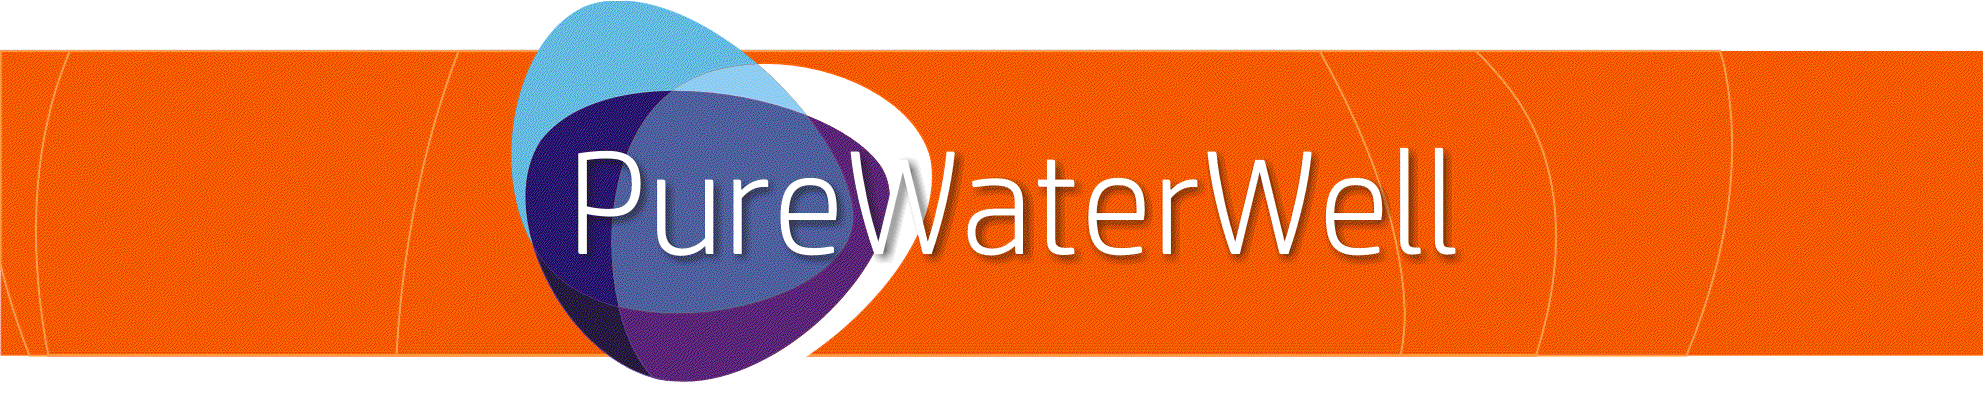 wastewater treatment systems PureWaterWell